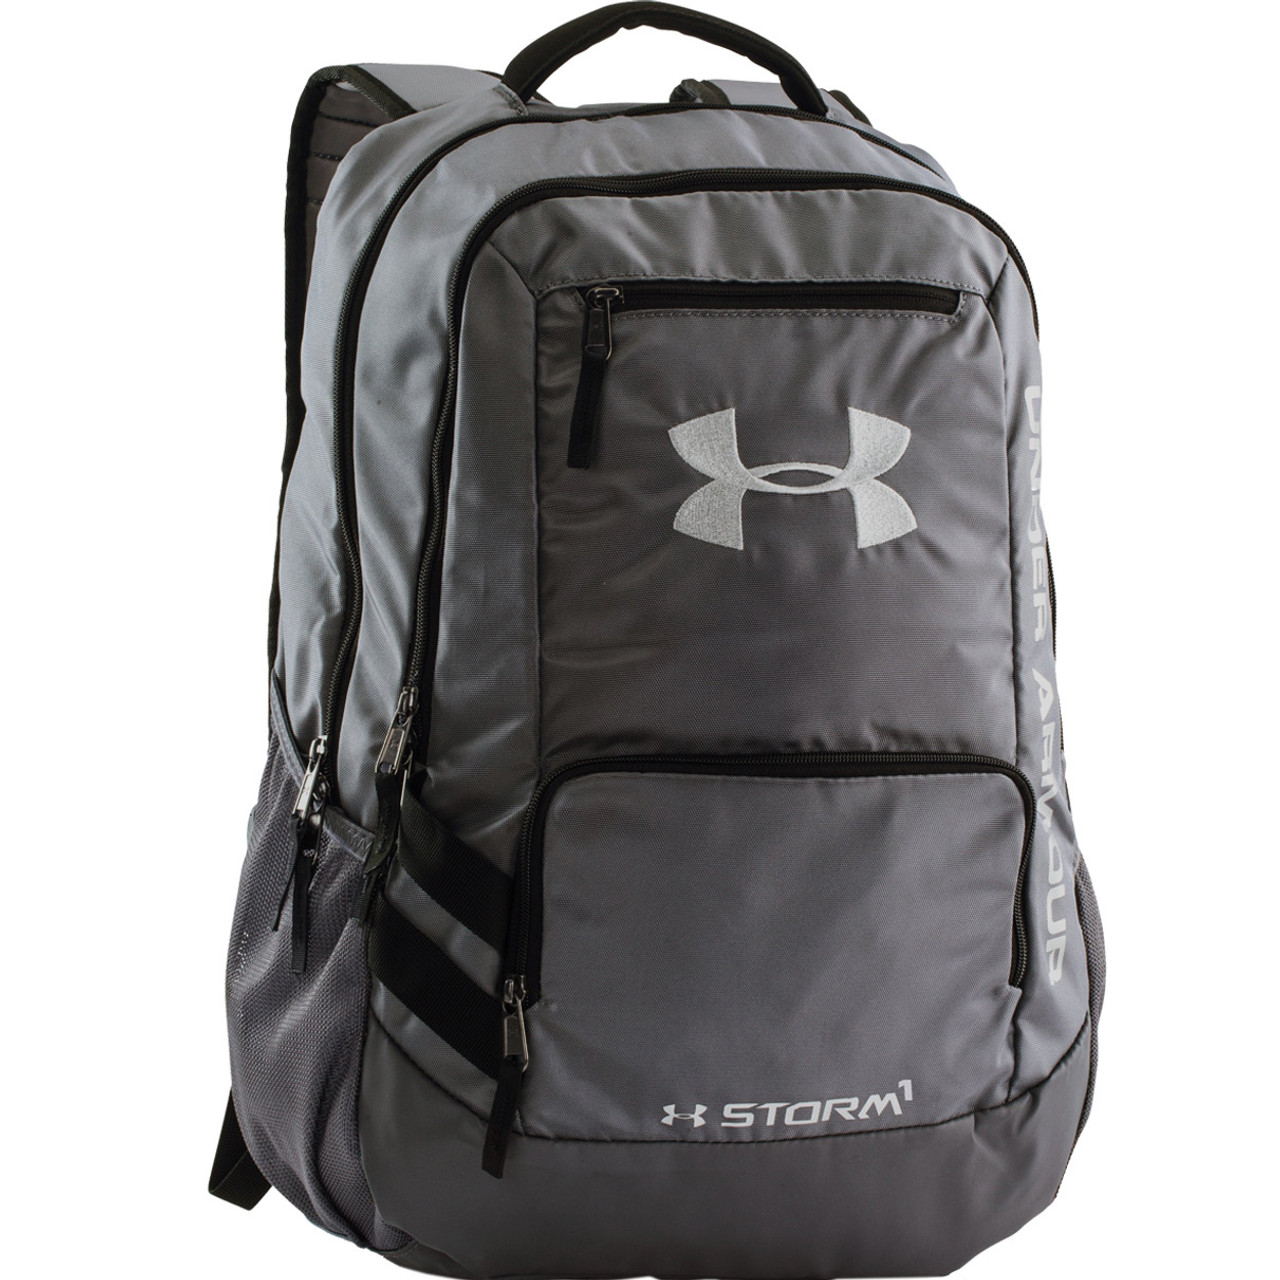 dbf9f2856c0b Under Armour Storm Hustle II Backpack